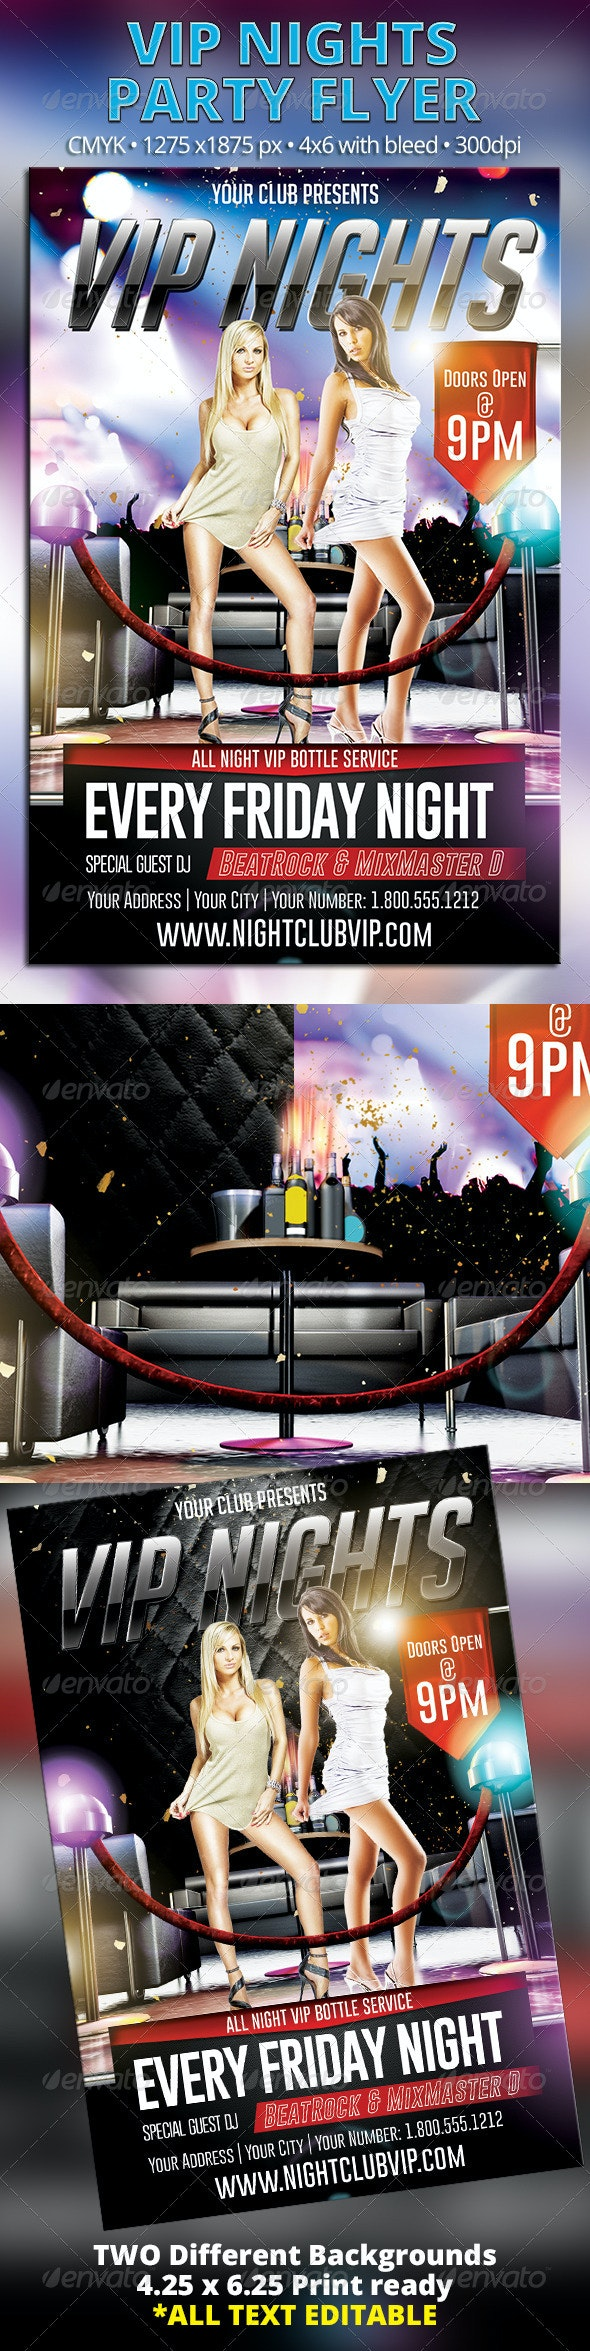 VIP Nights Party Flyer - Clubs & Parties Events